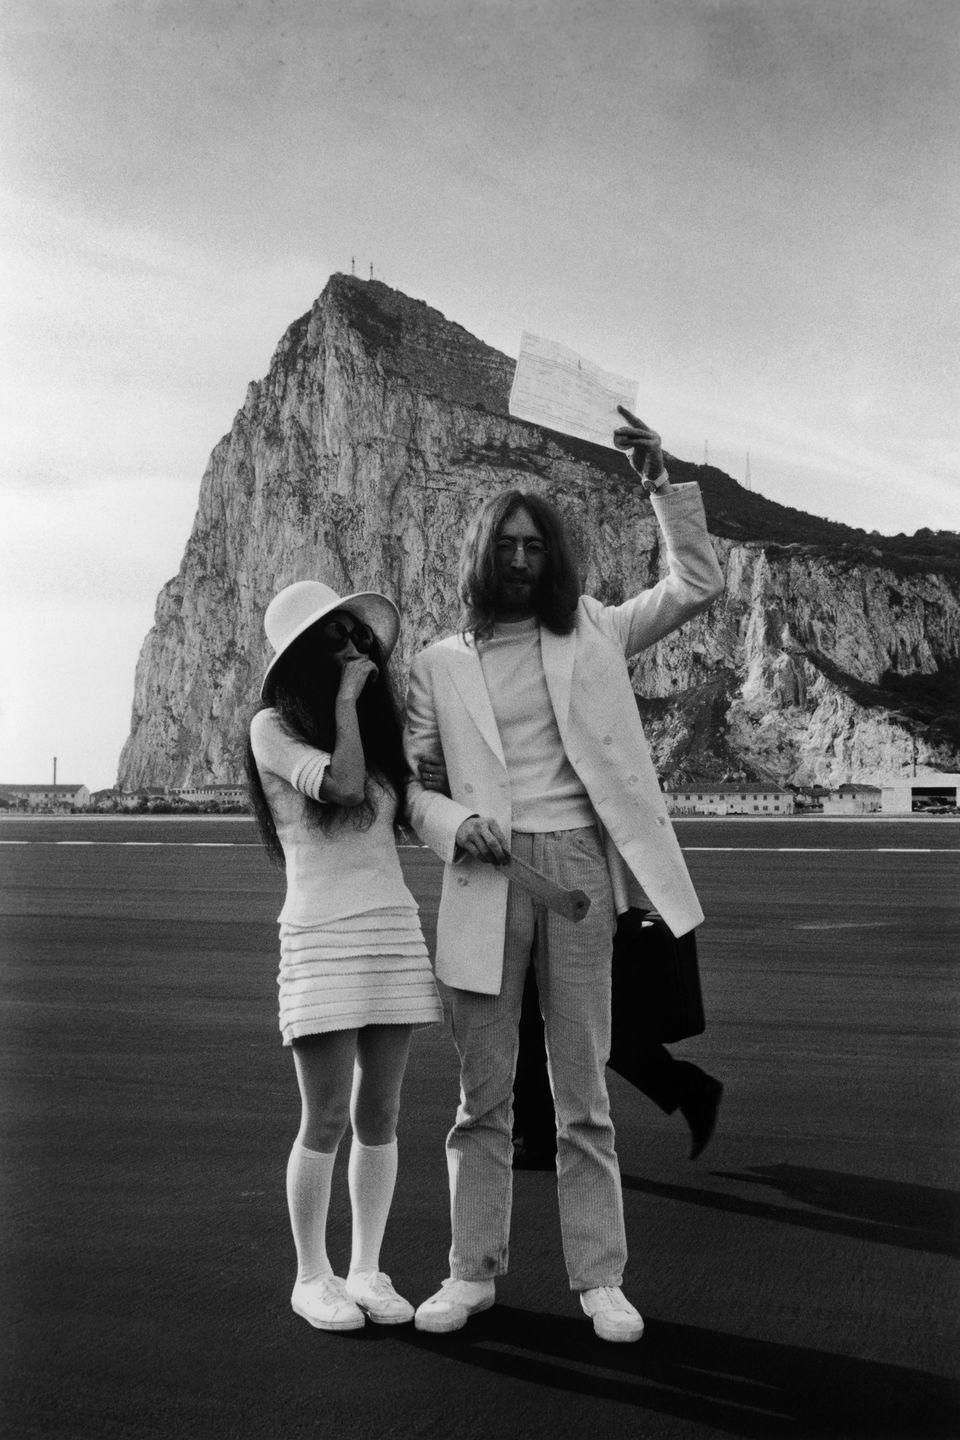 """<p>After Lennon's divorce was finalized in 1969, Yoko Ono and John Lennon <a href=""""https://ultimateclassicrock.com/john-lennon-marries-yoko-ono/"""" rel=""""nofollow noopener"""" target=""""_blank"""" data-ylk=""""slk:planned to marry on the cross-channel ferry"""" class=""""link rapid-noclick-resp"""">planned to marry on the cross-channel ferry</a> between England and Paris. But because the bride wasn't a British citizen, they weren't allowed to. Instead, they traveled to Gibraltar and were wed in a civil ceremony at the British Registrar Office. </p>"""